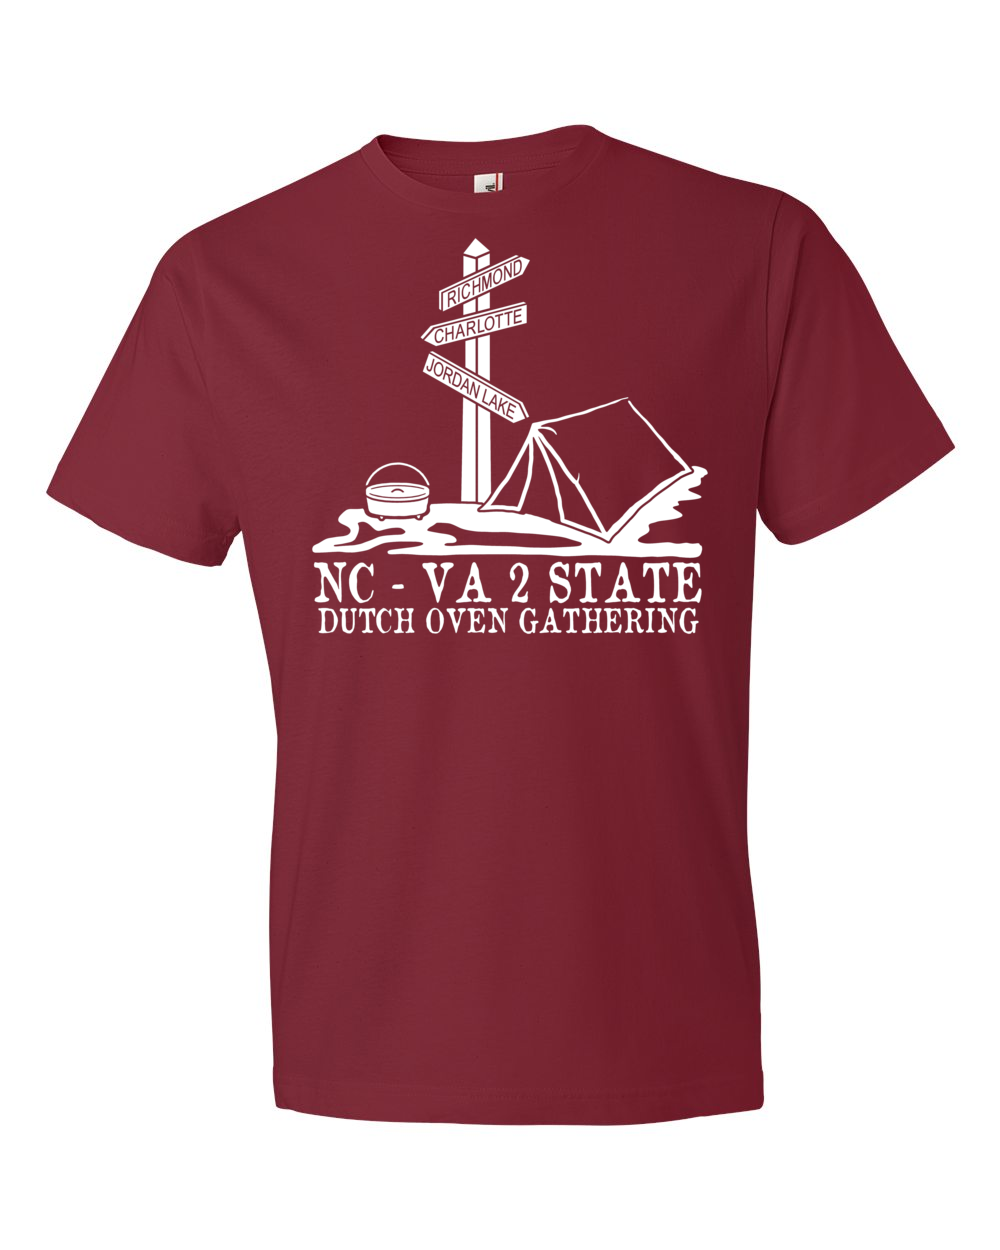 Tee shirt color chart kds graphicskds graphics this is the official logo for the nc va 2 state dutch oven gathering it is a white screen print on a caribbean blue or independence red cotton tee shirt nvjuhfo Images